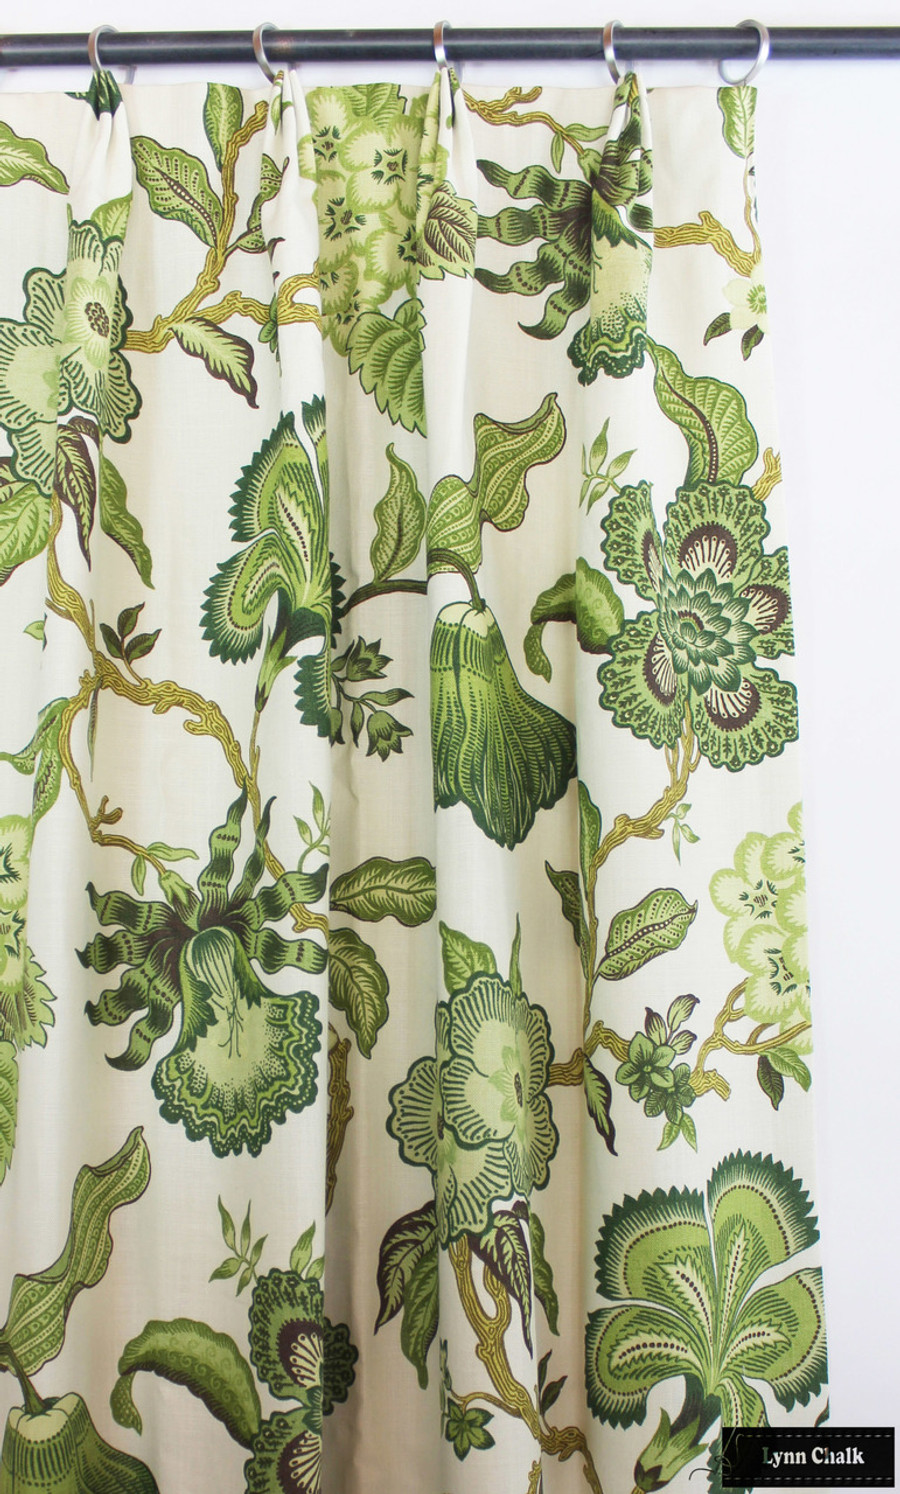 Schumacher Celerie Kemble Hothouse Flowers Custom Roman Shades (shown in Mineral-comes in other colors)